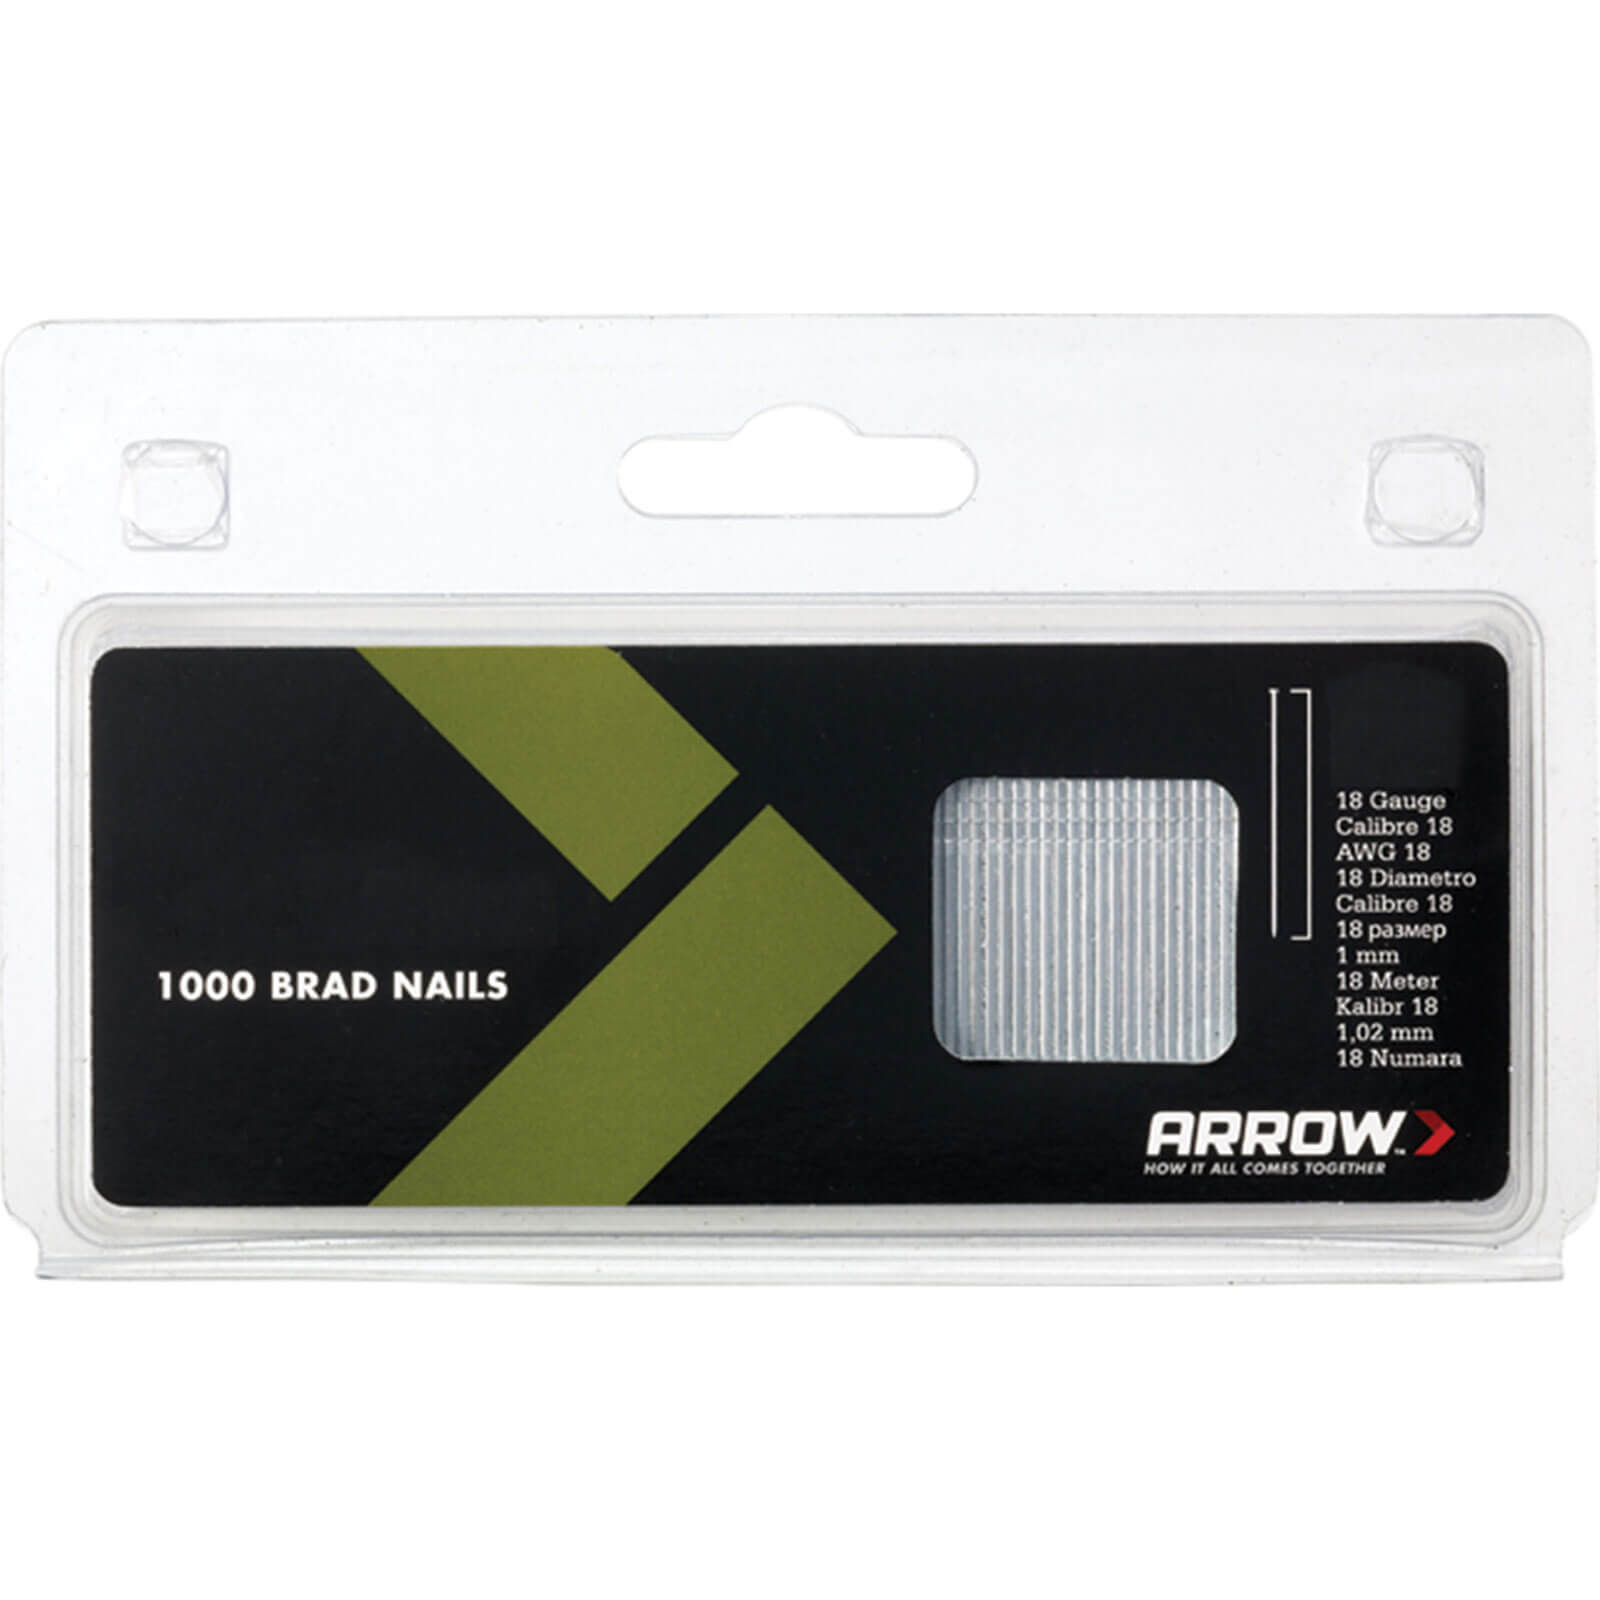 Arrow 18 Gauge Brad Nails 38mm of 1000